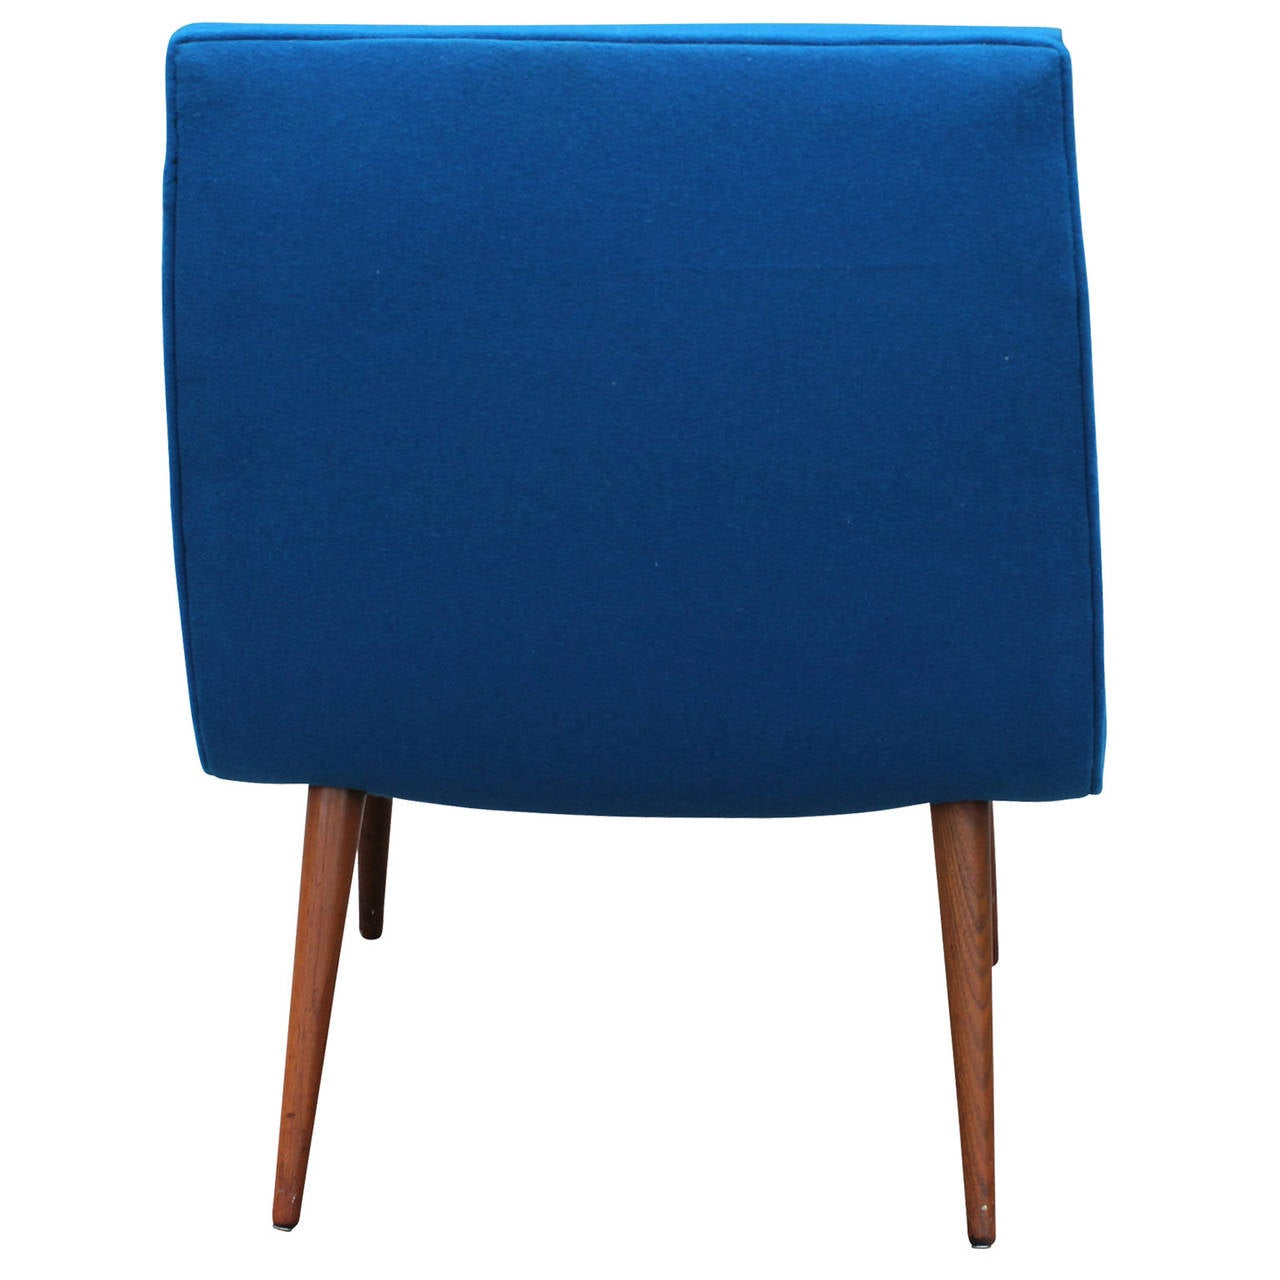 Splendid bold blue scoop chair for sale at 1stdibs